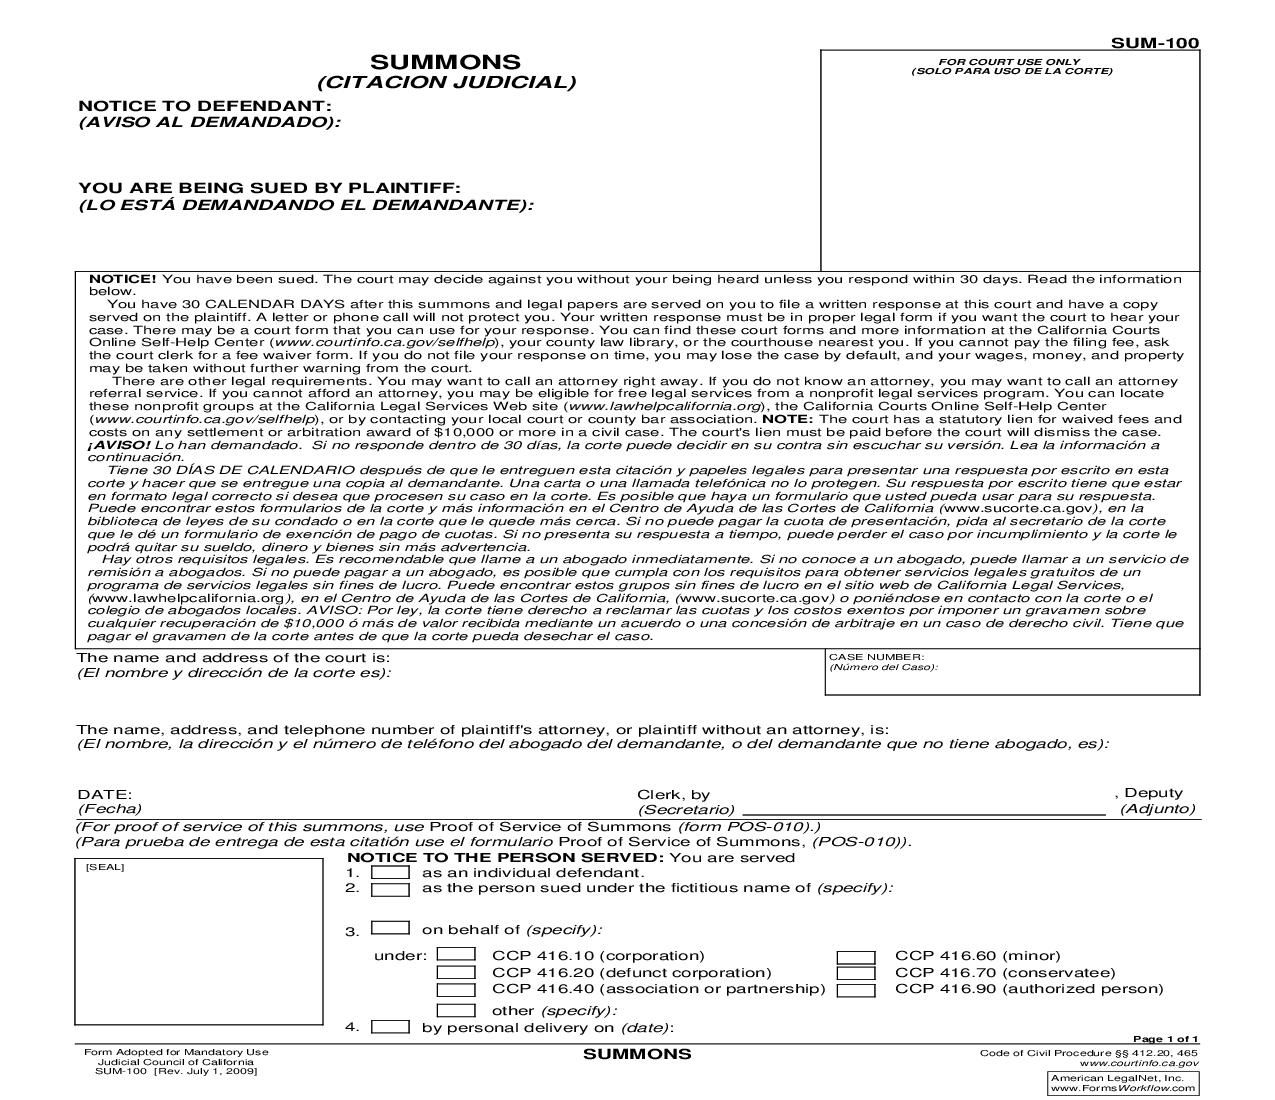 This Is A California Form That Can Be Used For Summons Within Judicial Council Download This Form For Free Now Cali Resume Examples Judicial Adoption Papers